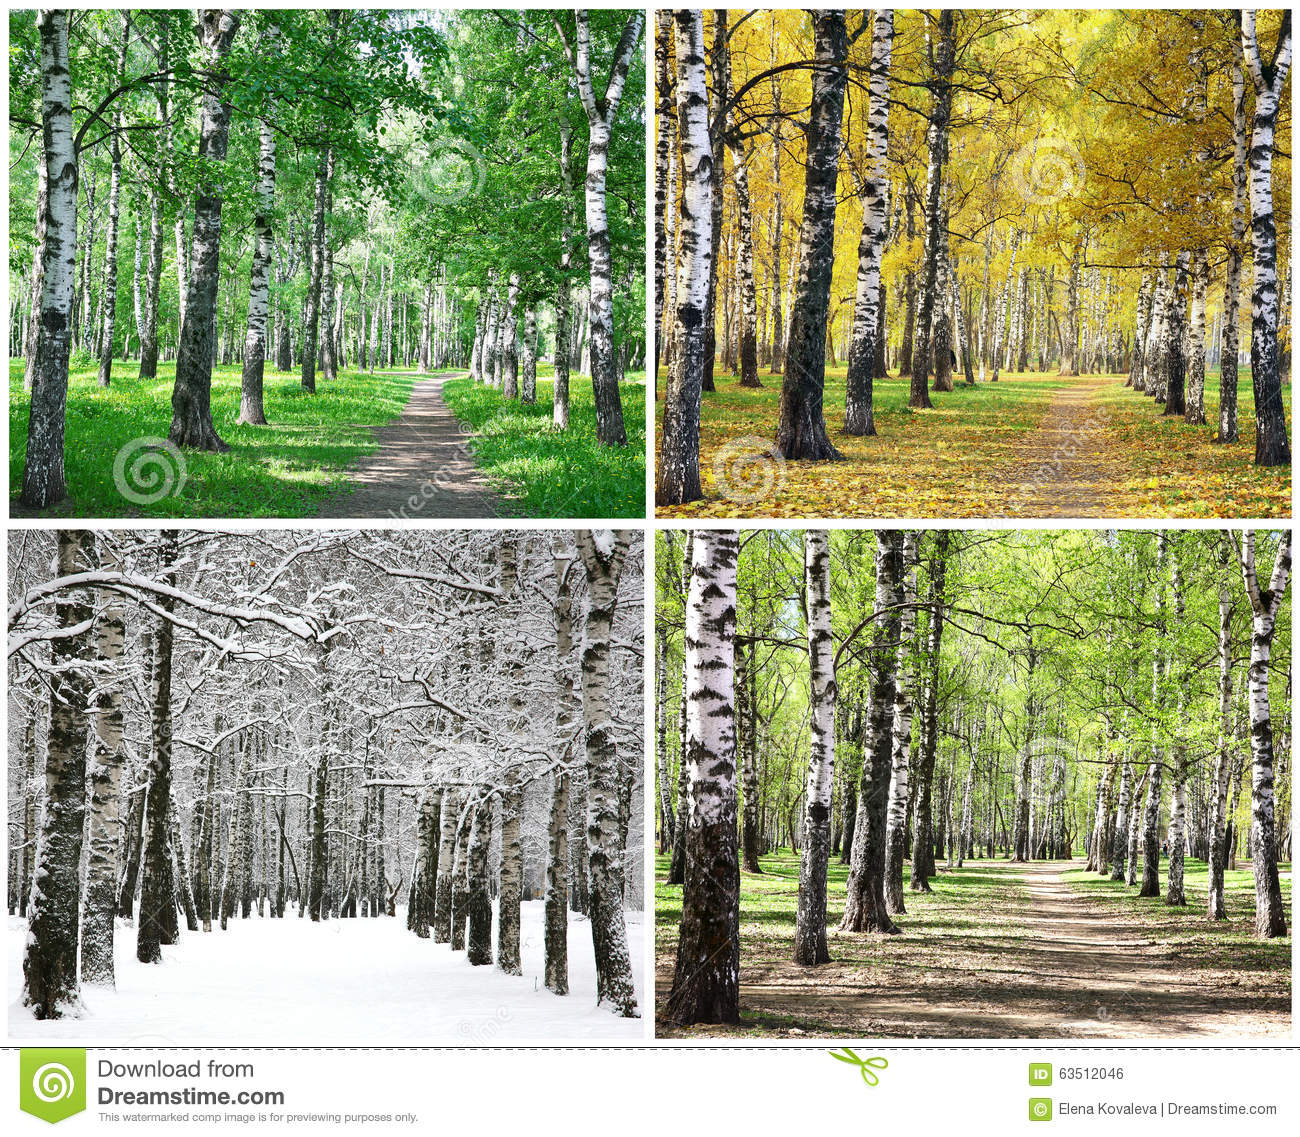 Birch trees in the winter stock photo image 2170700 - Four Seasons Of Row Birch Trees Royalty Free Stock Image